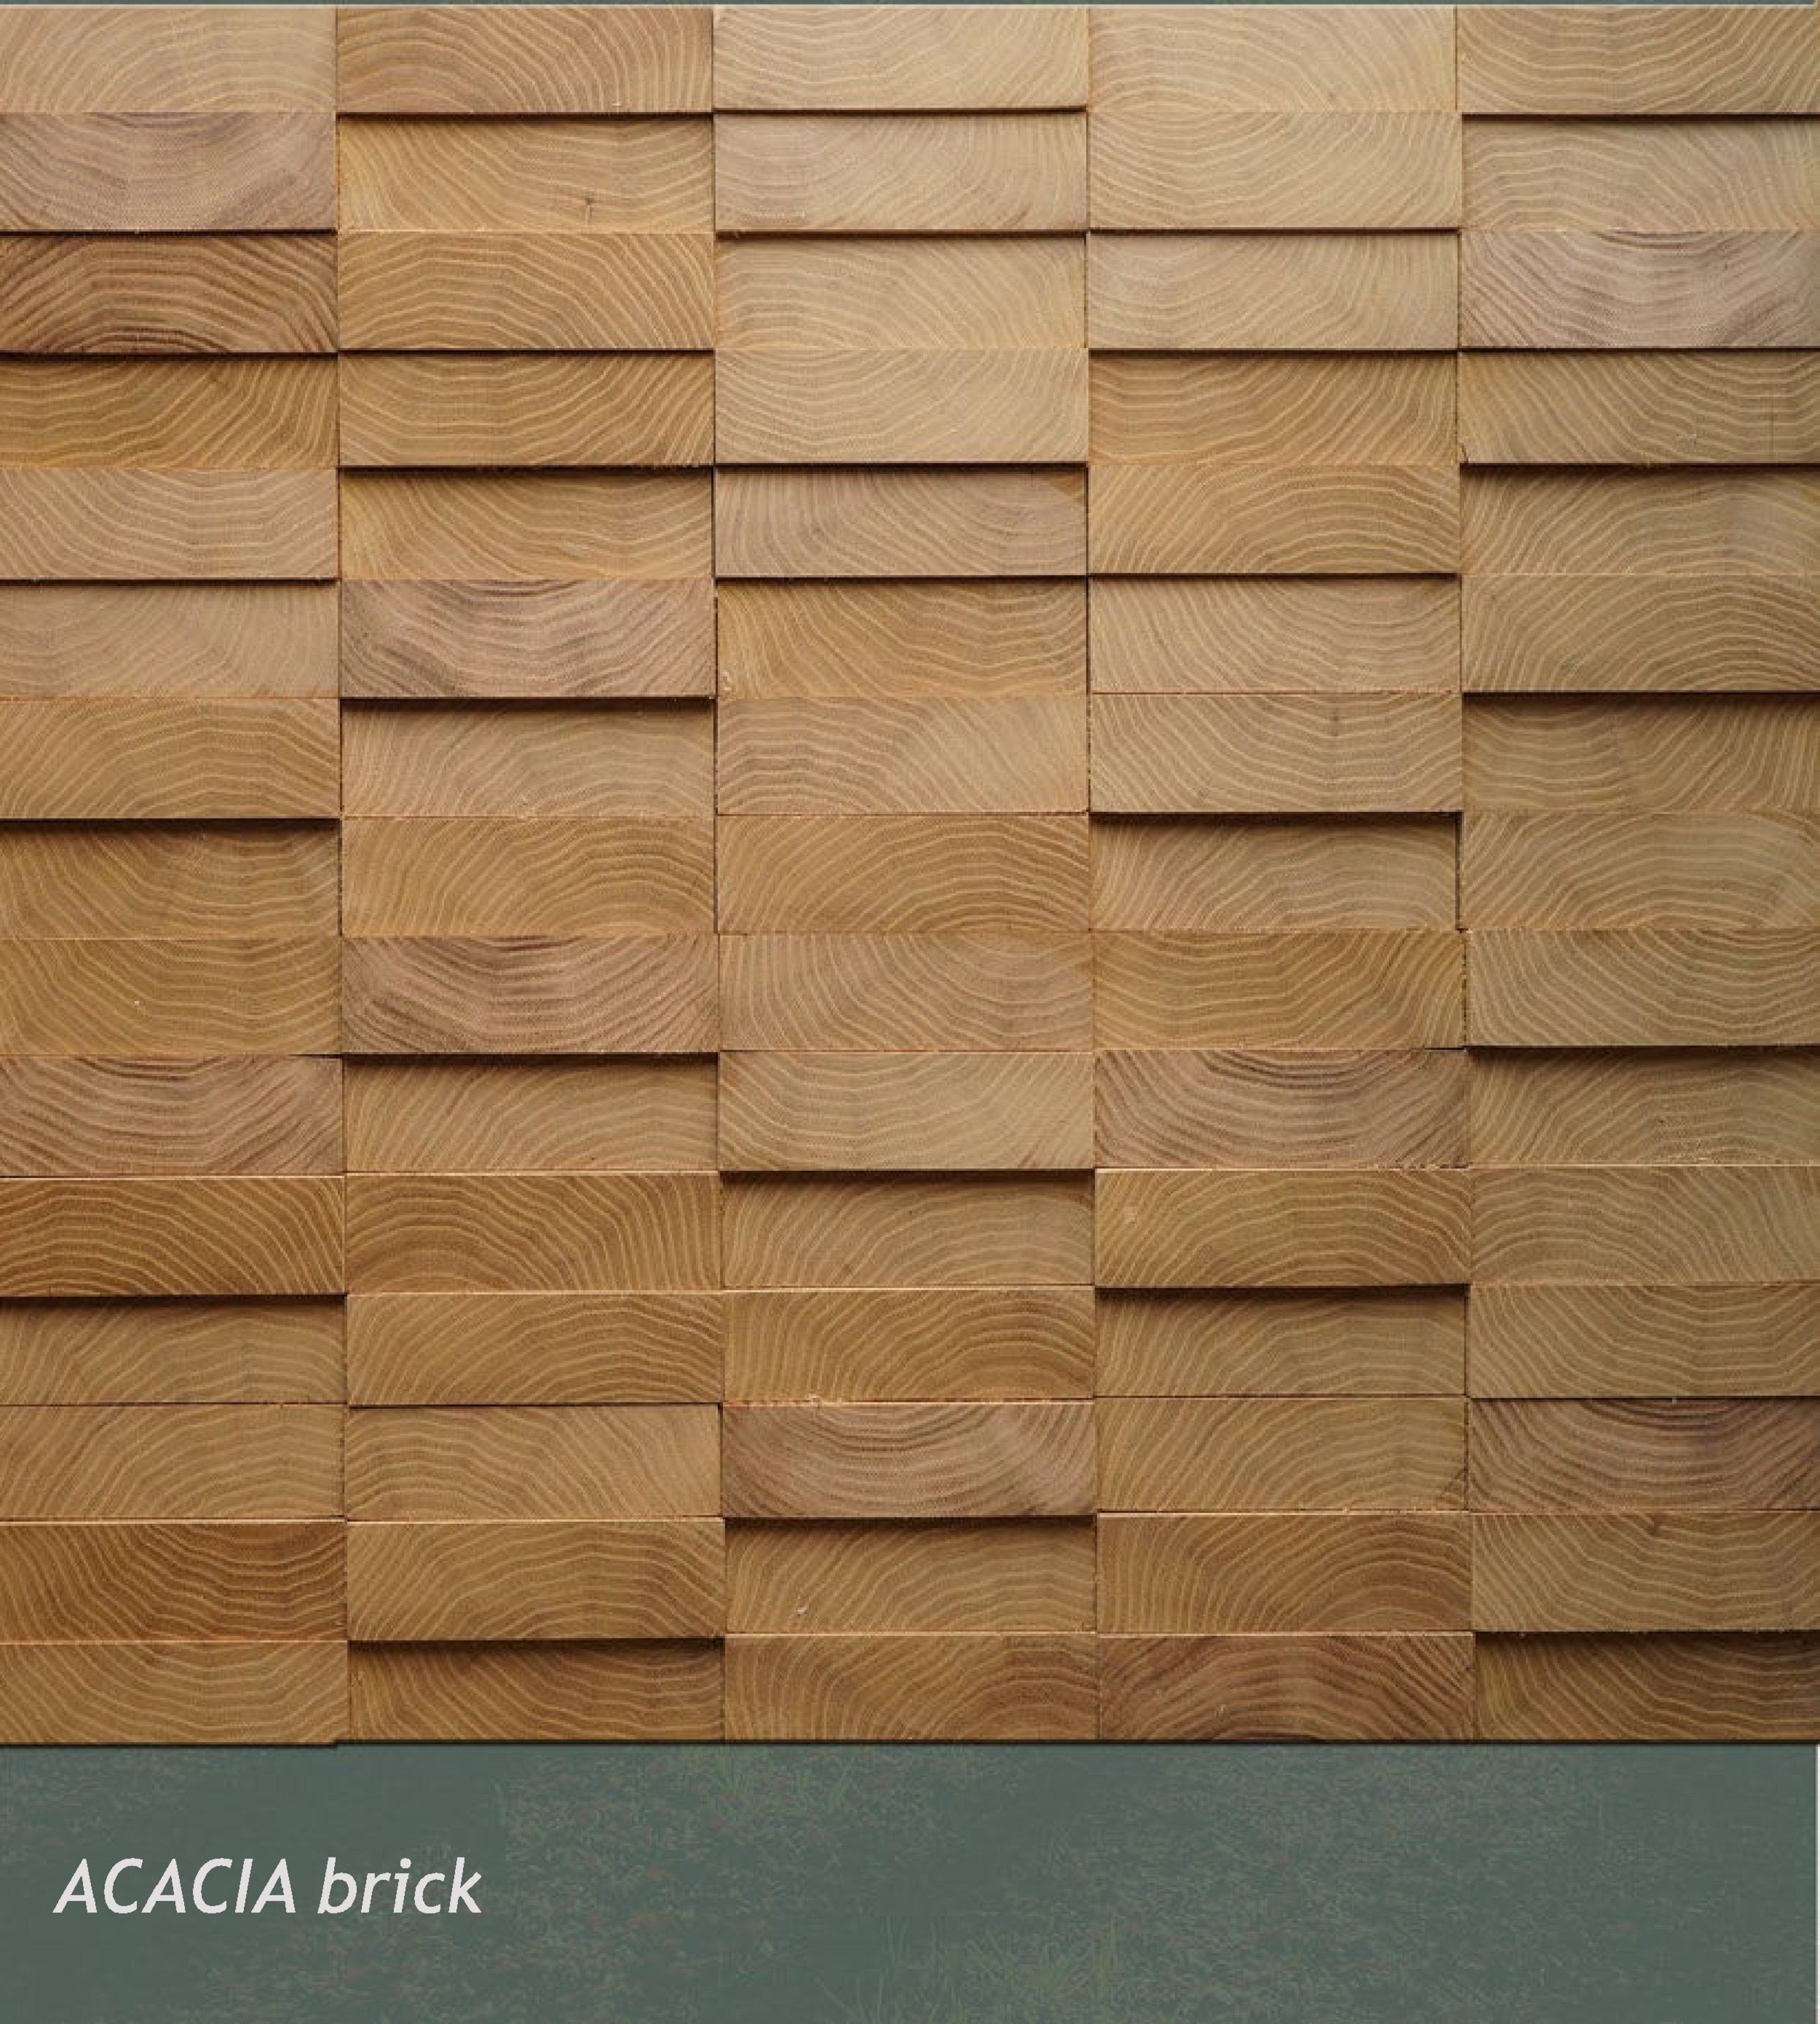 D Wall Panels Italia Wall Decor Specialists Interiors Exteriors Acacia Brick